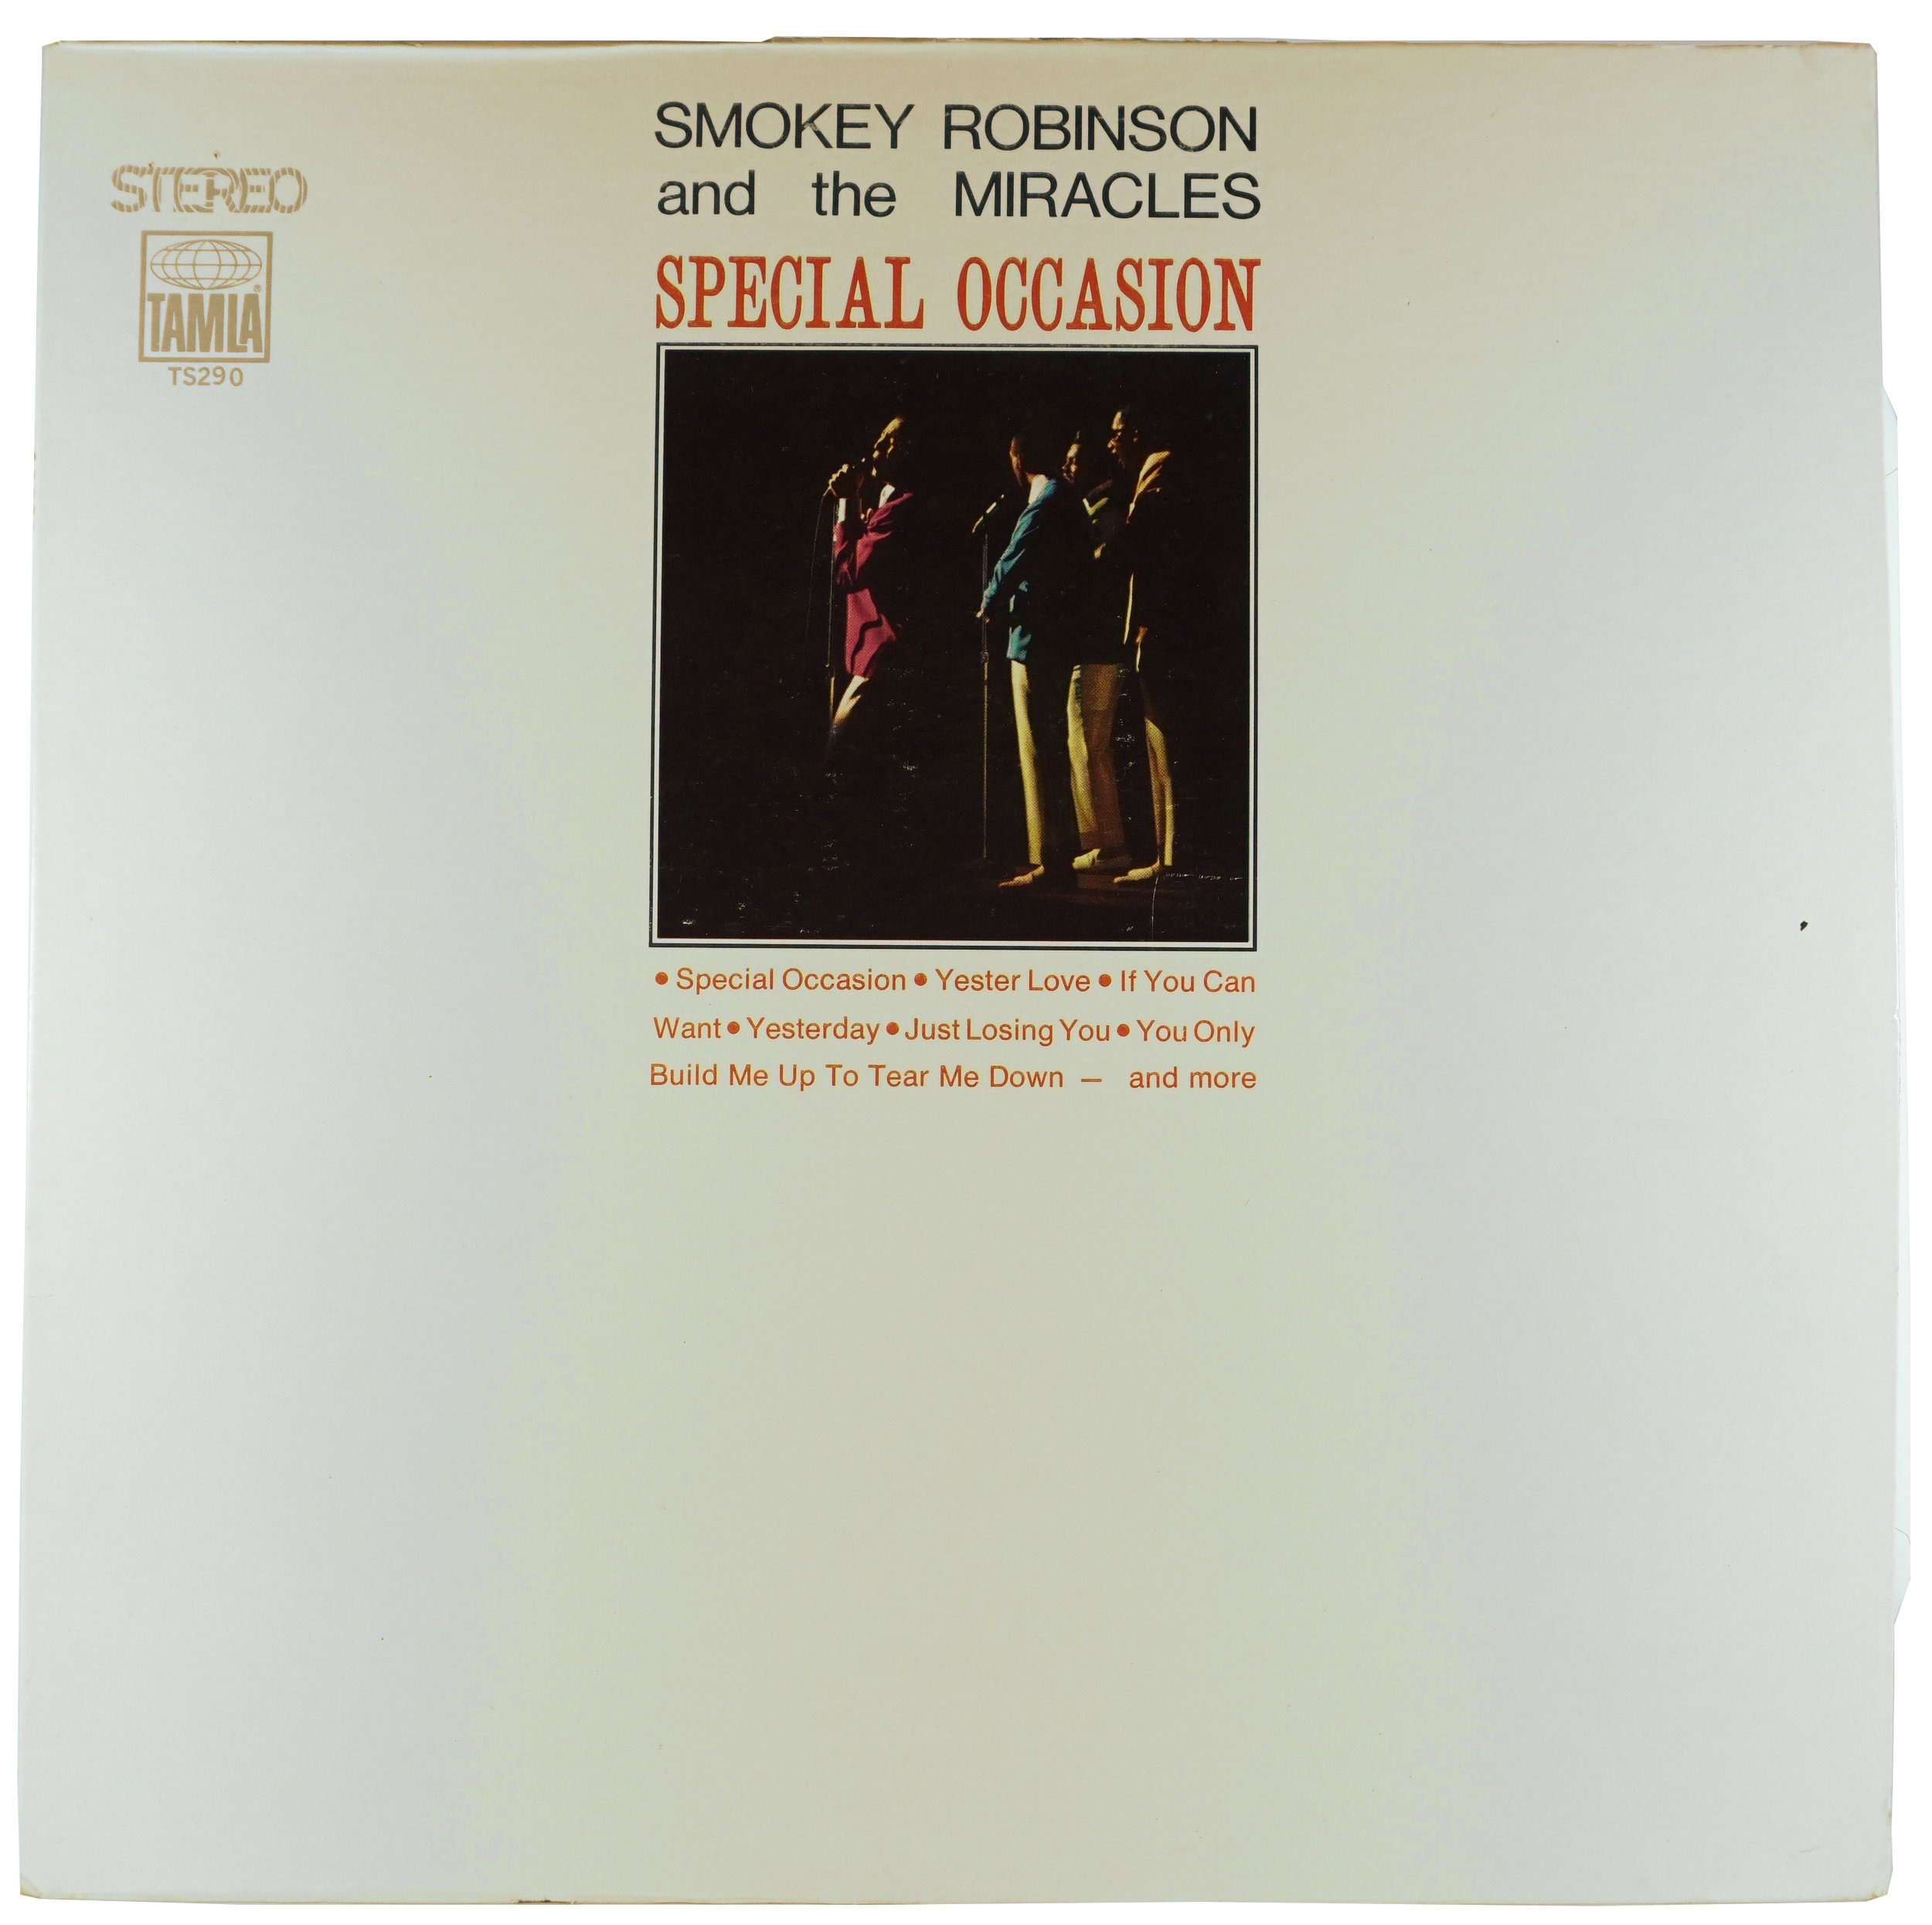 WLWLTDOO-1968-LP-SMOKEY_ROBINSON-SPECIAL_OCCASION-FRONT-TS290.jpg